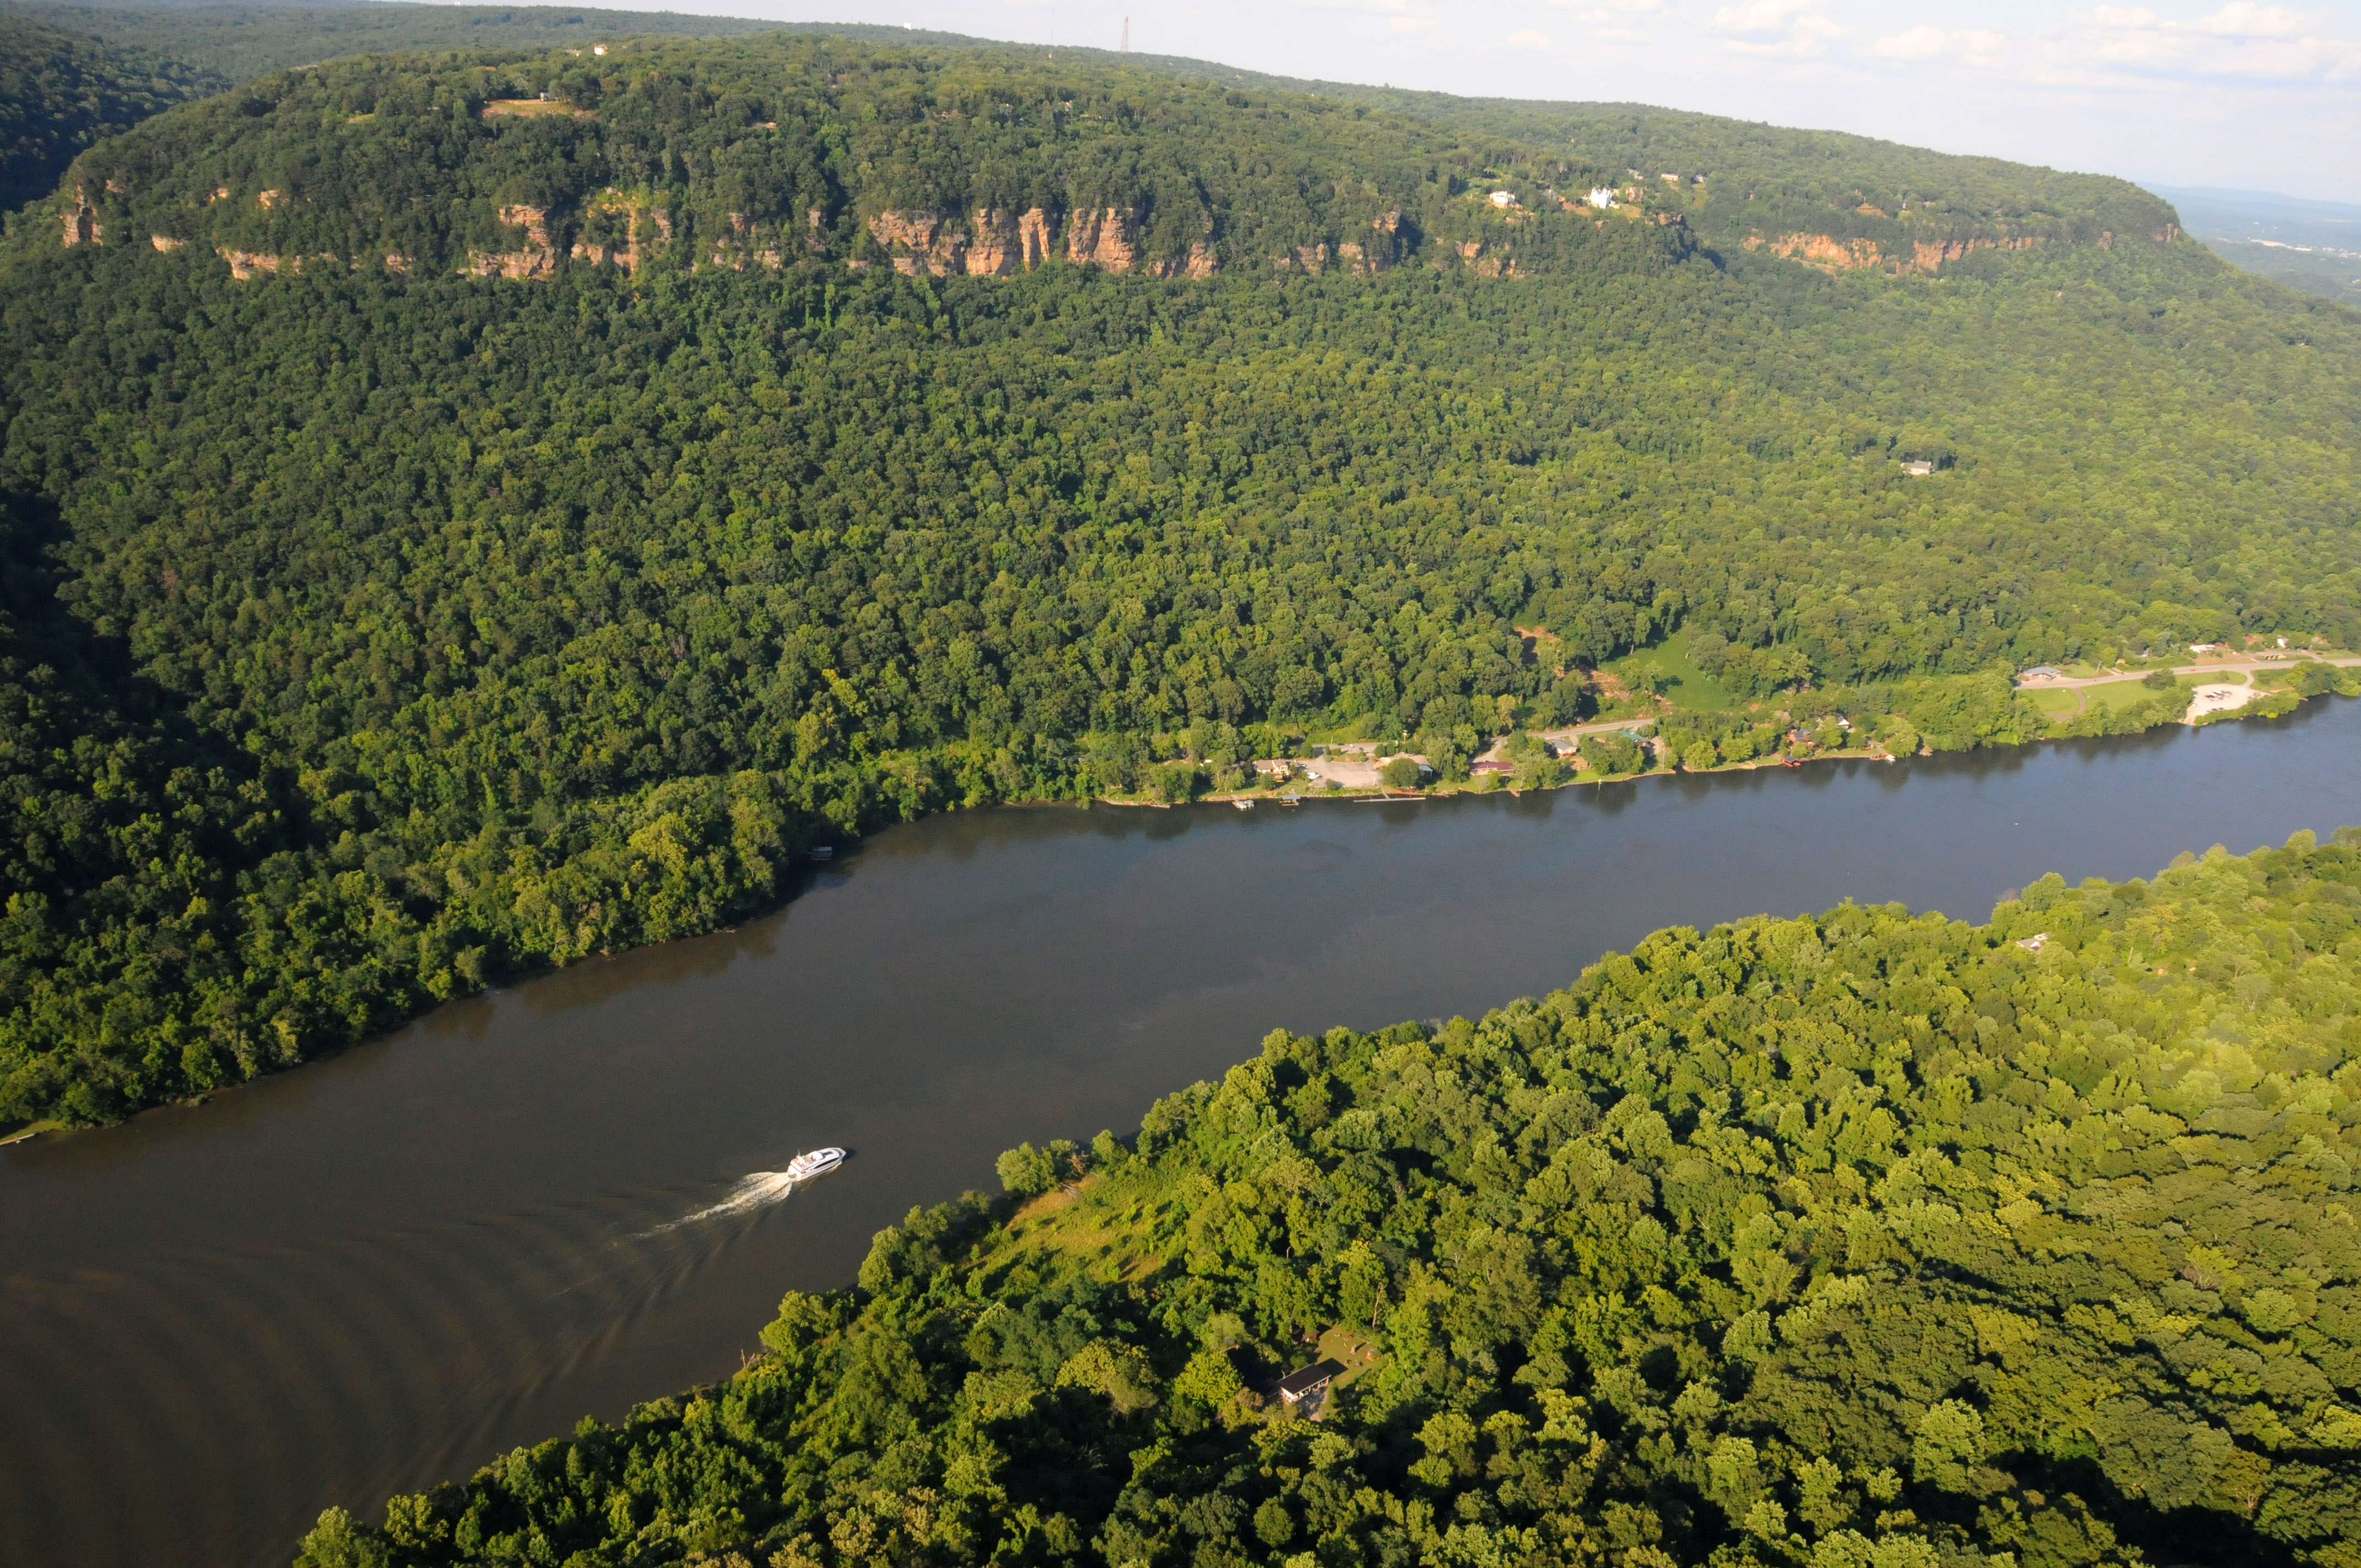 Tennessee River Gorge in Chattanooga, TN - Tennessee Vacation